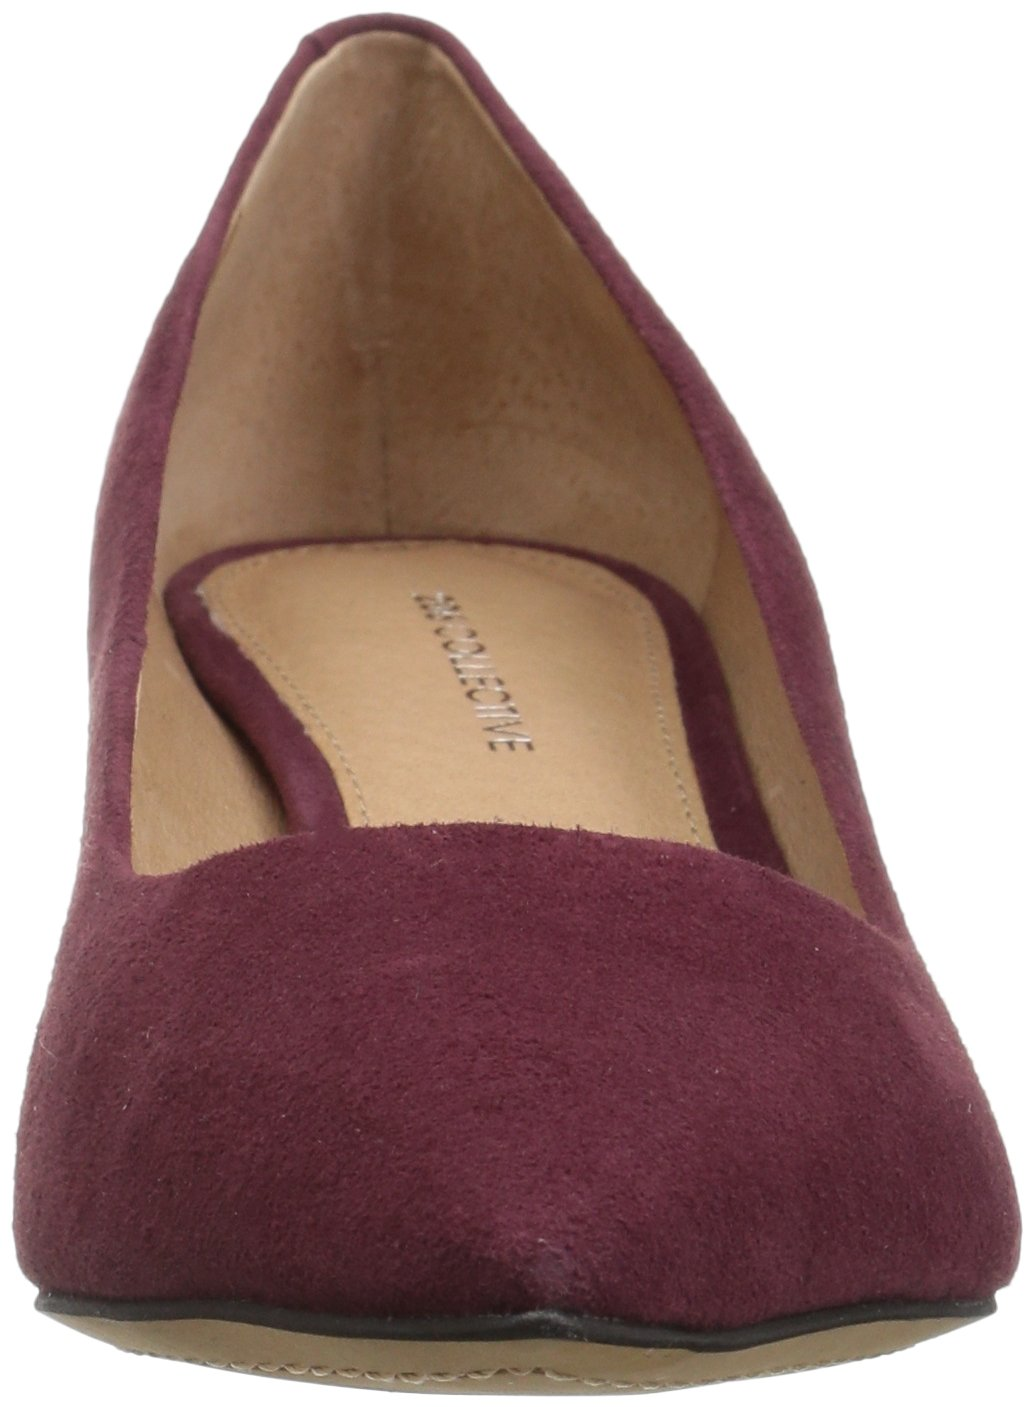 206 Collective Women's Queen Anne Kitten Heel Dress Pump, Burgundy, 8.5 B US by 206 Collective (Image #4)